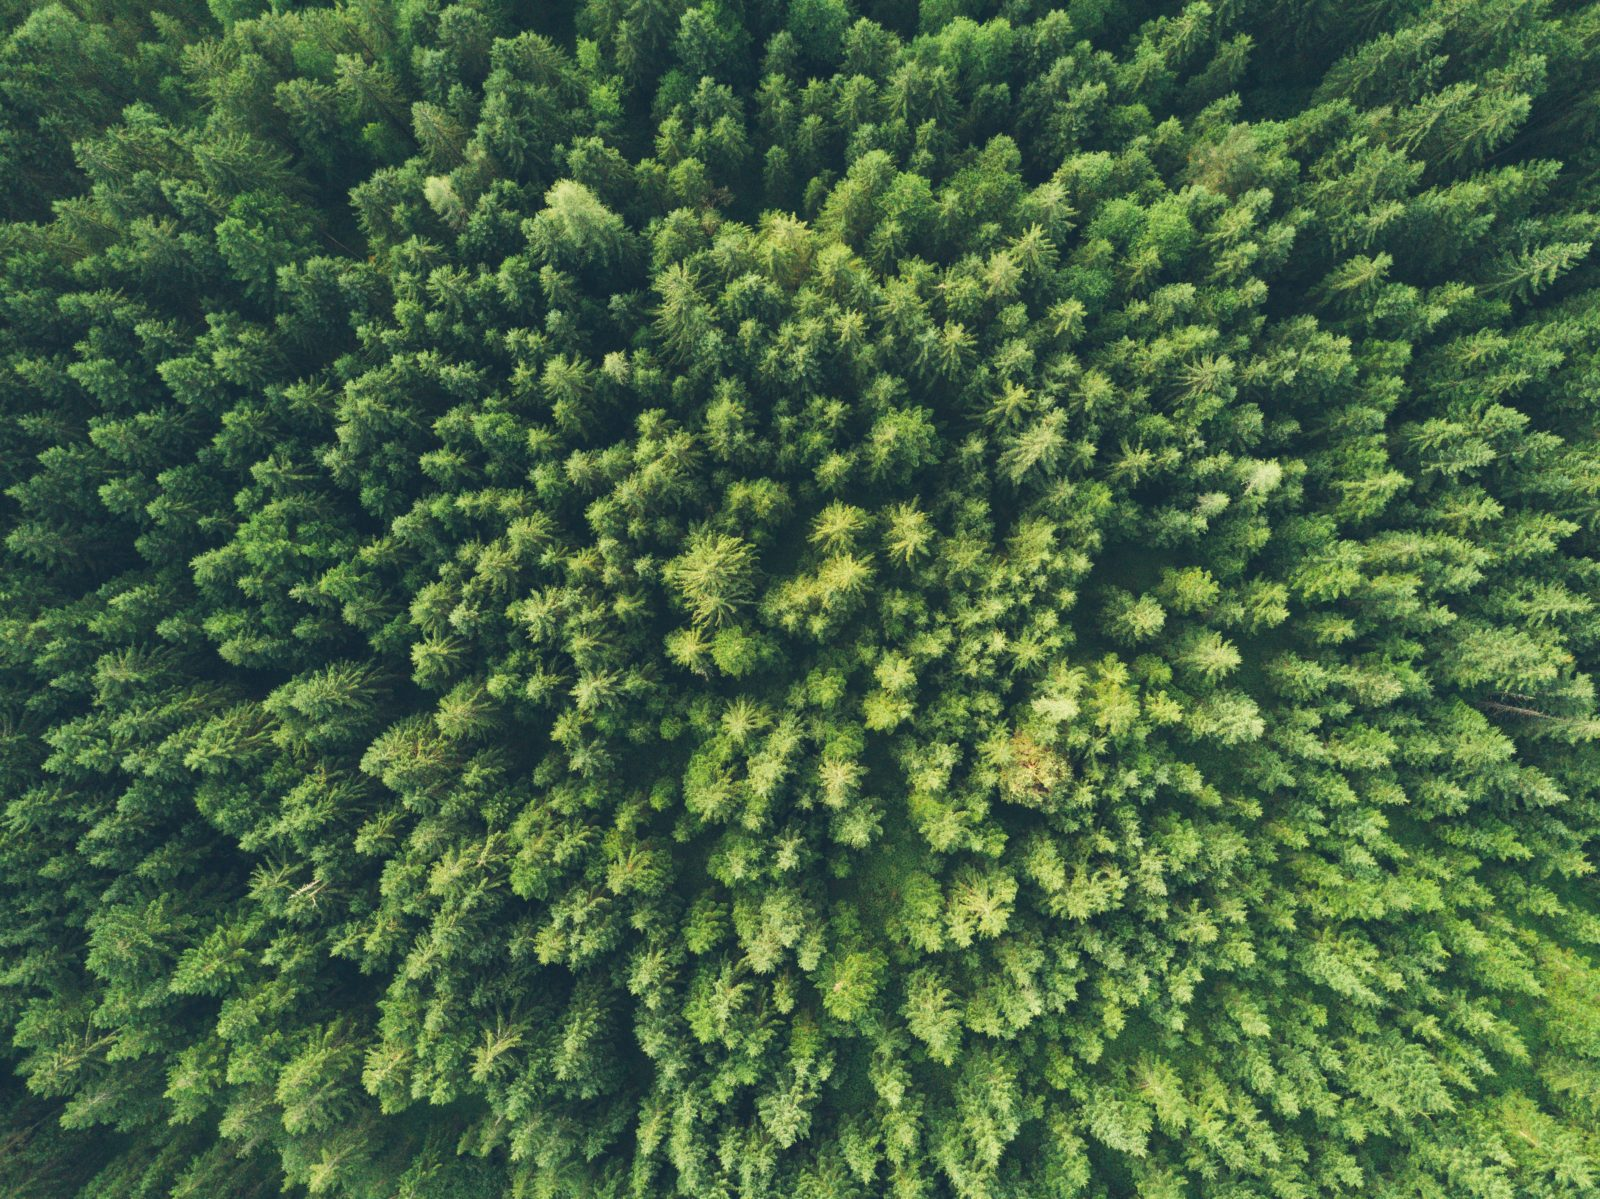 Stewardship as an Environmental and Economic Ethic